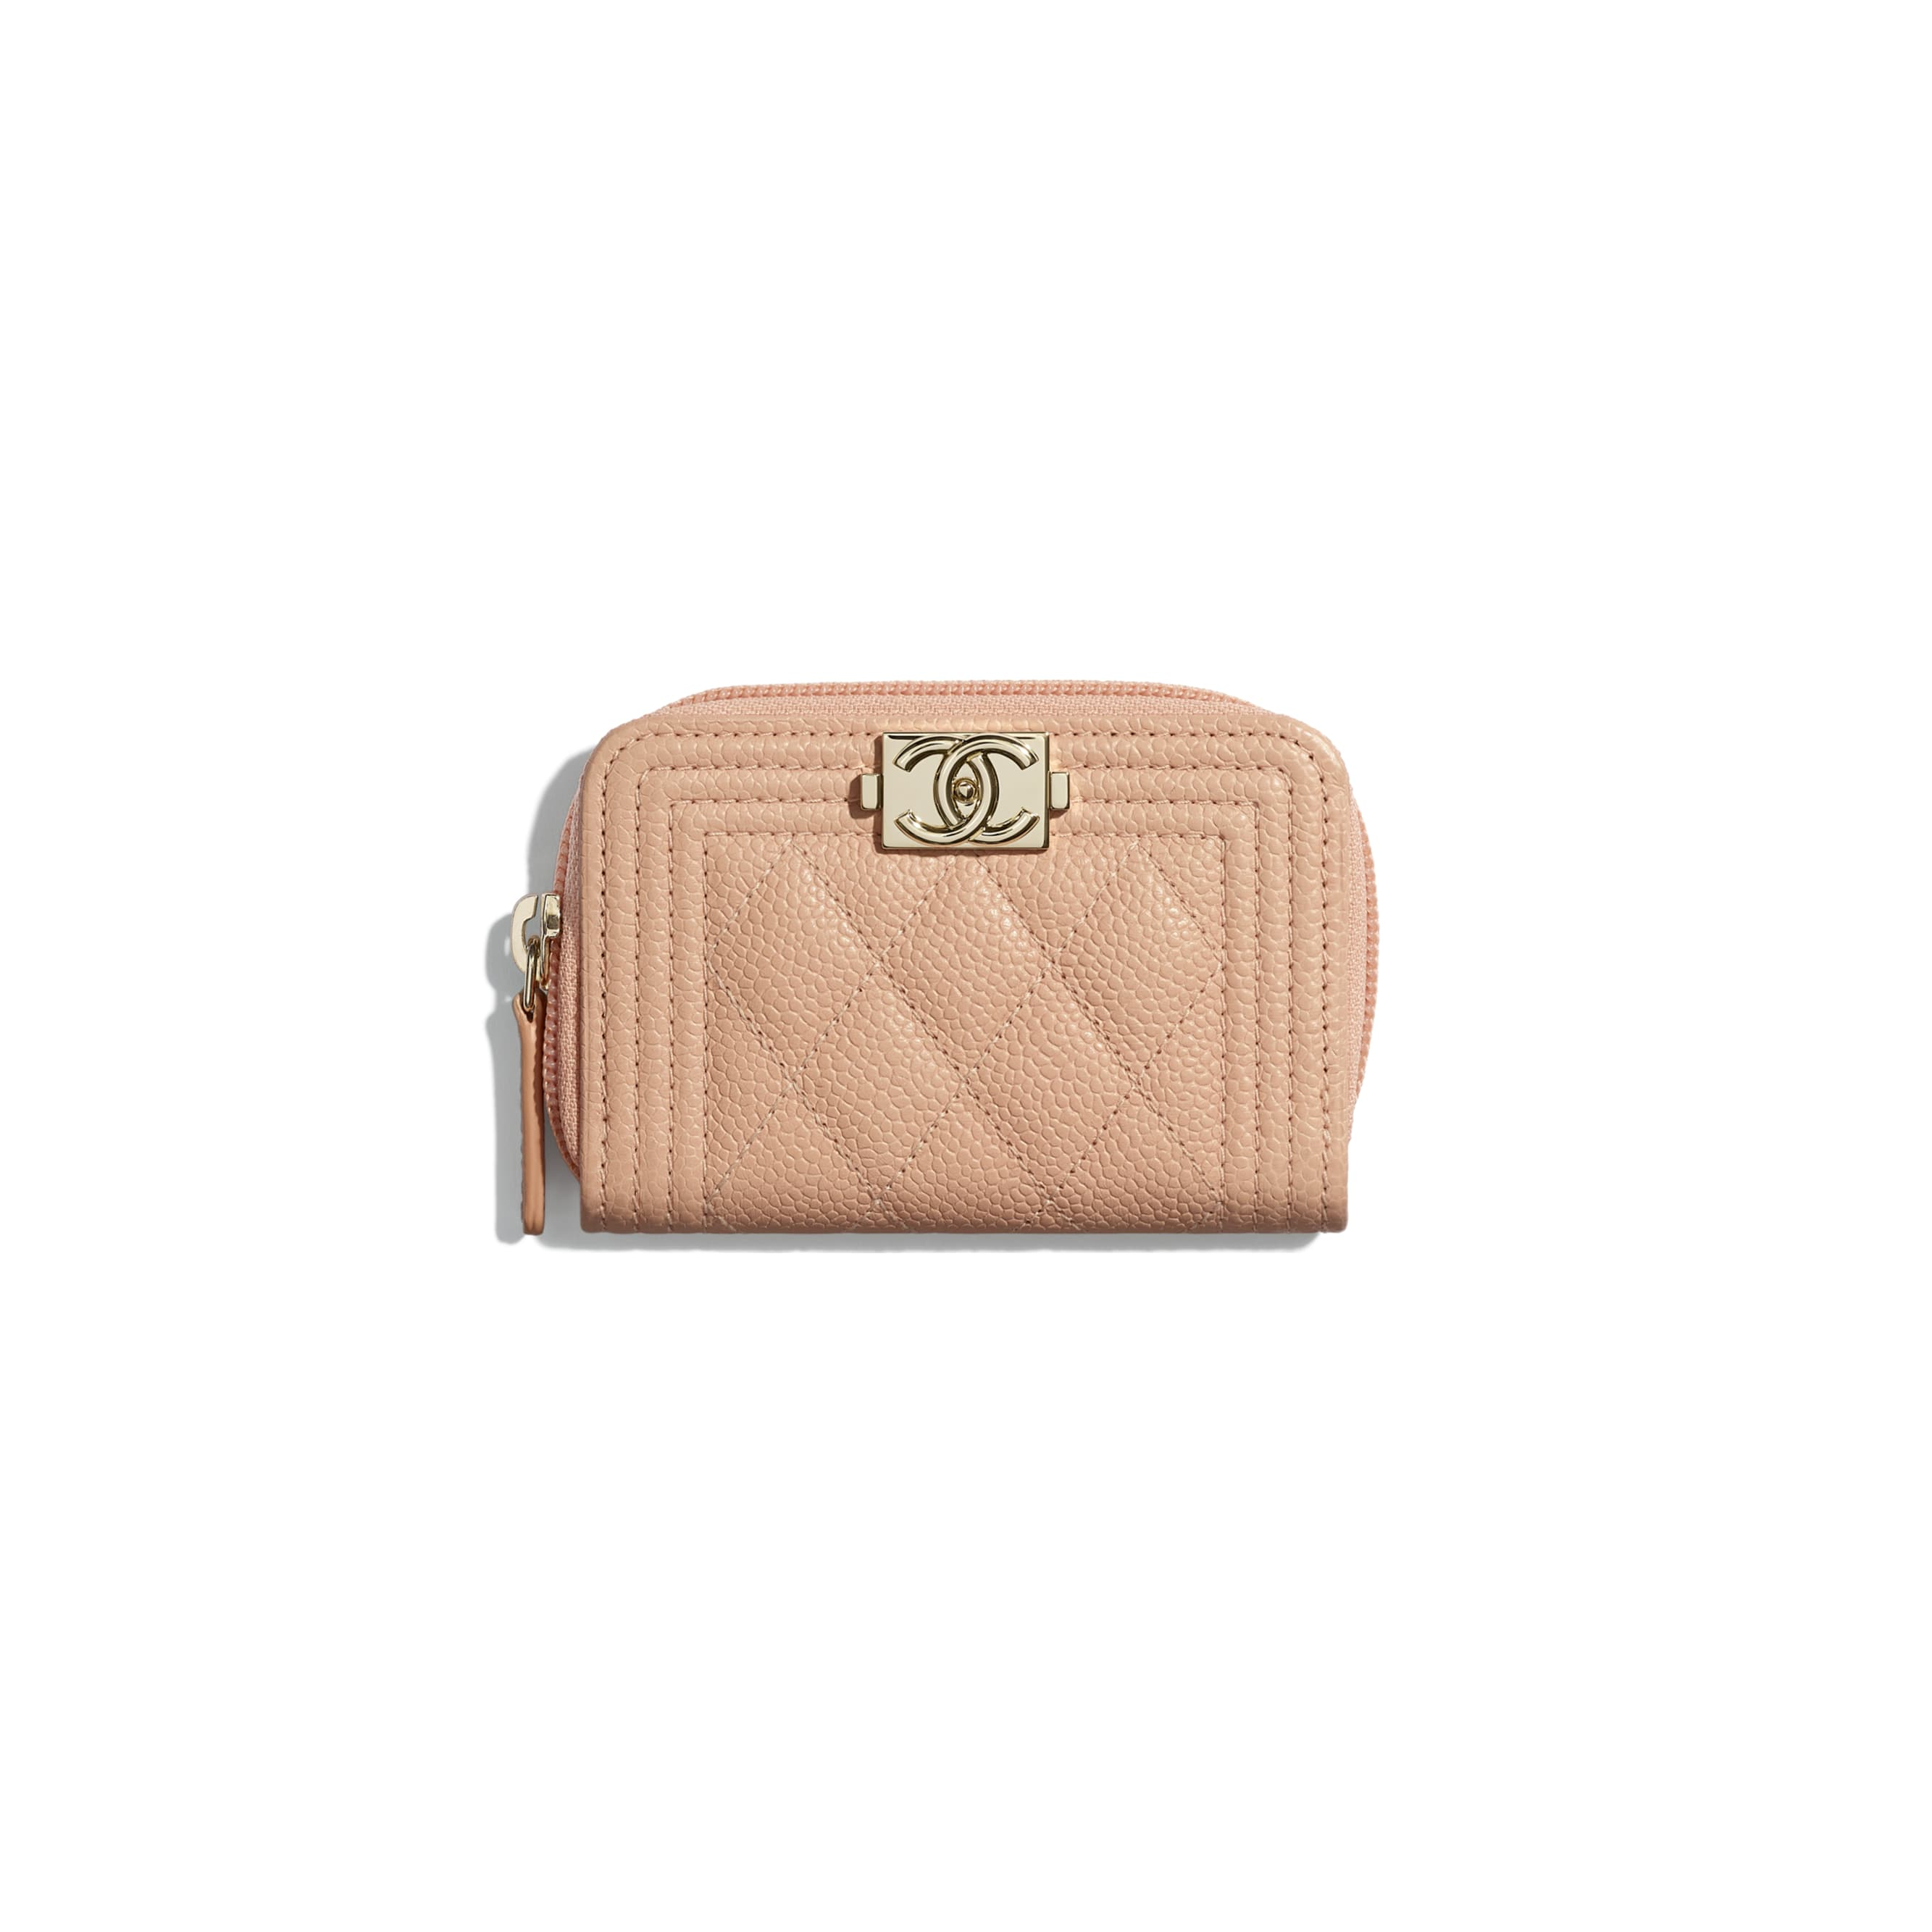 BOY CHANEL Zipped Coin Purse - Pink - Grained Calfskin & Gold-Tone Metal - CHANEL - Default view - see standard sized version